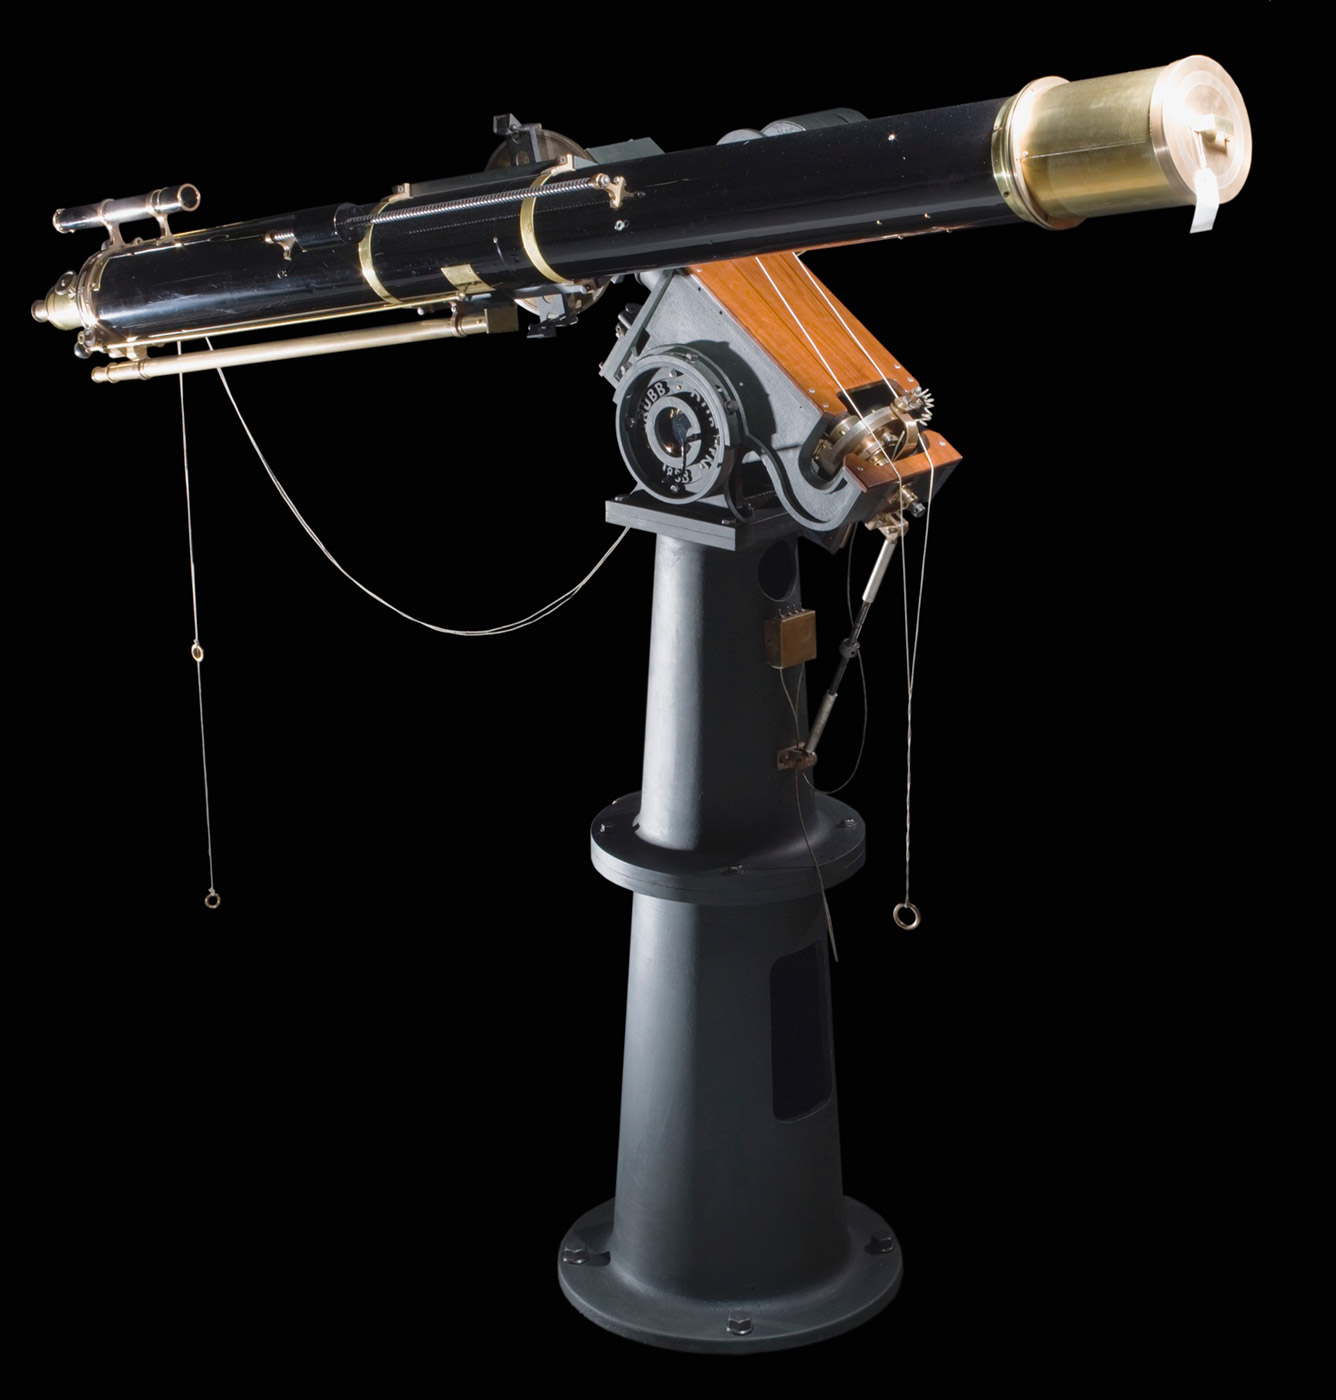 1883 Grubb Refractor Telescope made from brass. The telescope has a tapering cast iron base in two parts. The Polar Axis Assembly is made from cast iron and brass, and comes with three separate disc weights. The Declination Access Assembly is made from cast iron and steel and comes with a cylindrical weight with a pulley on the top. - click to view larger image